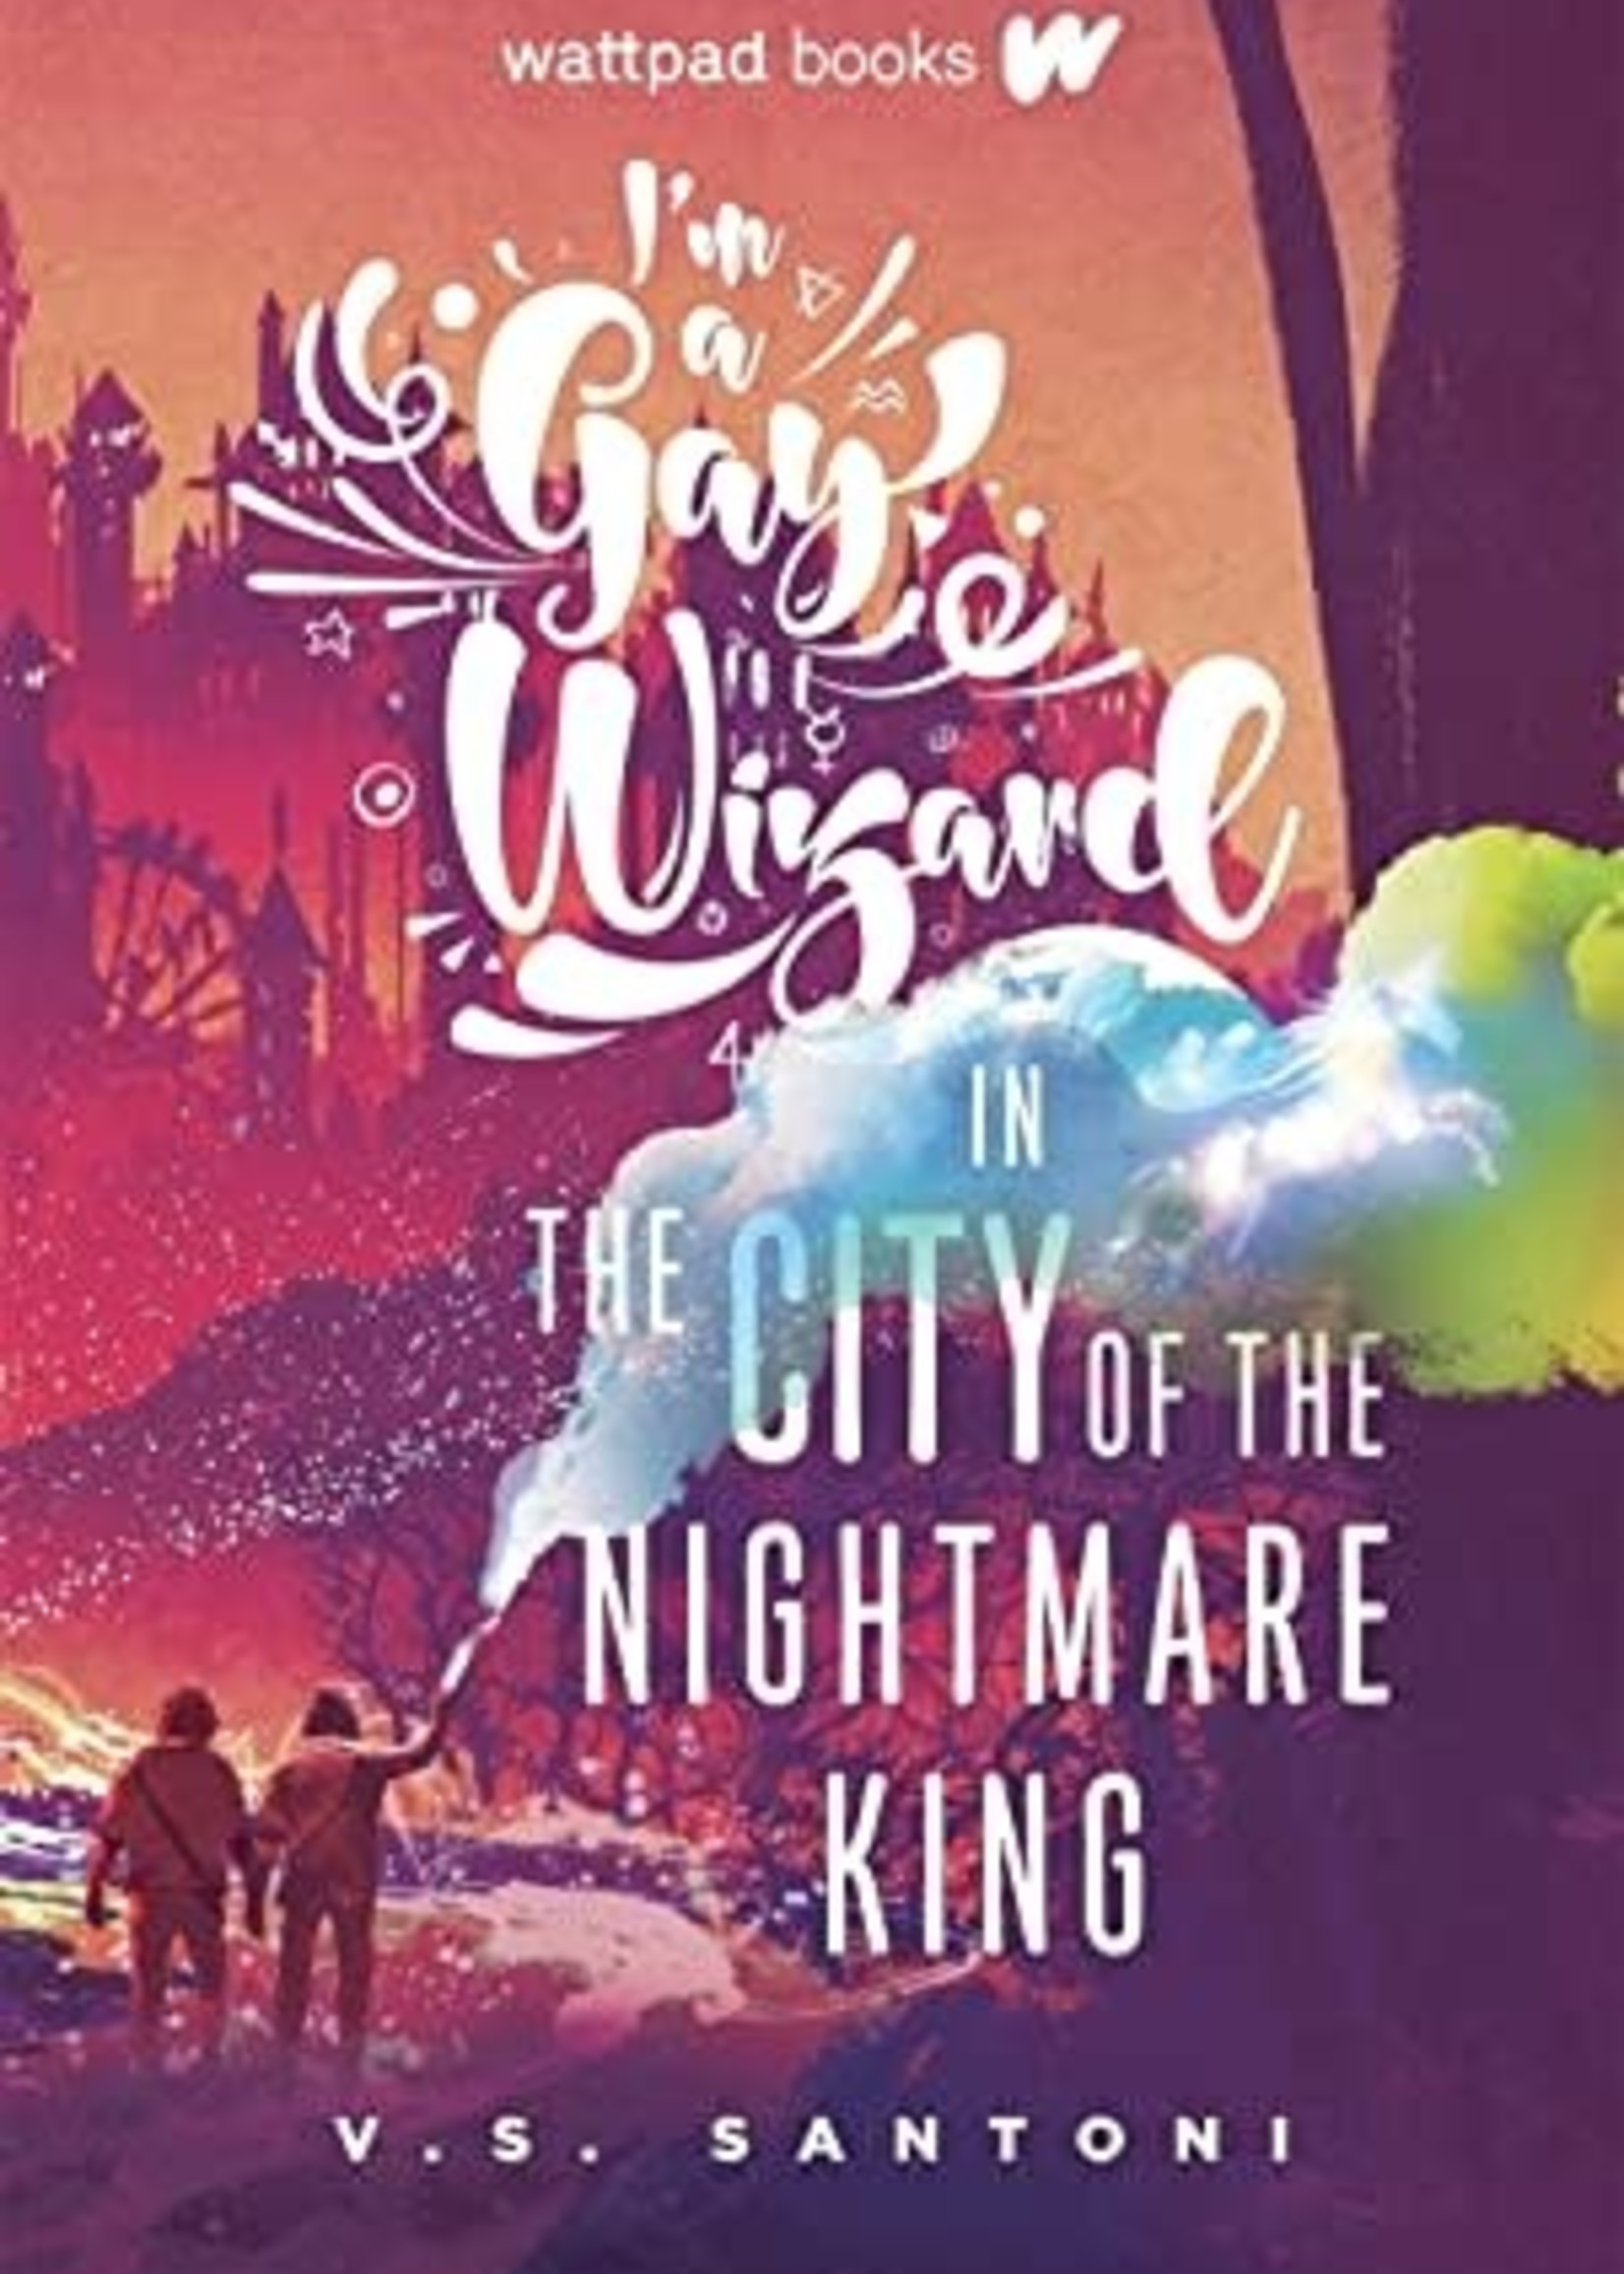 I'm a Gay Wizard In the City of the Nightmare King (Gay Wizard #2) by V.S. Santoni